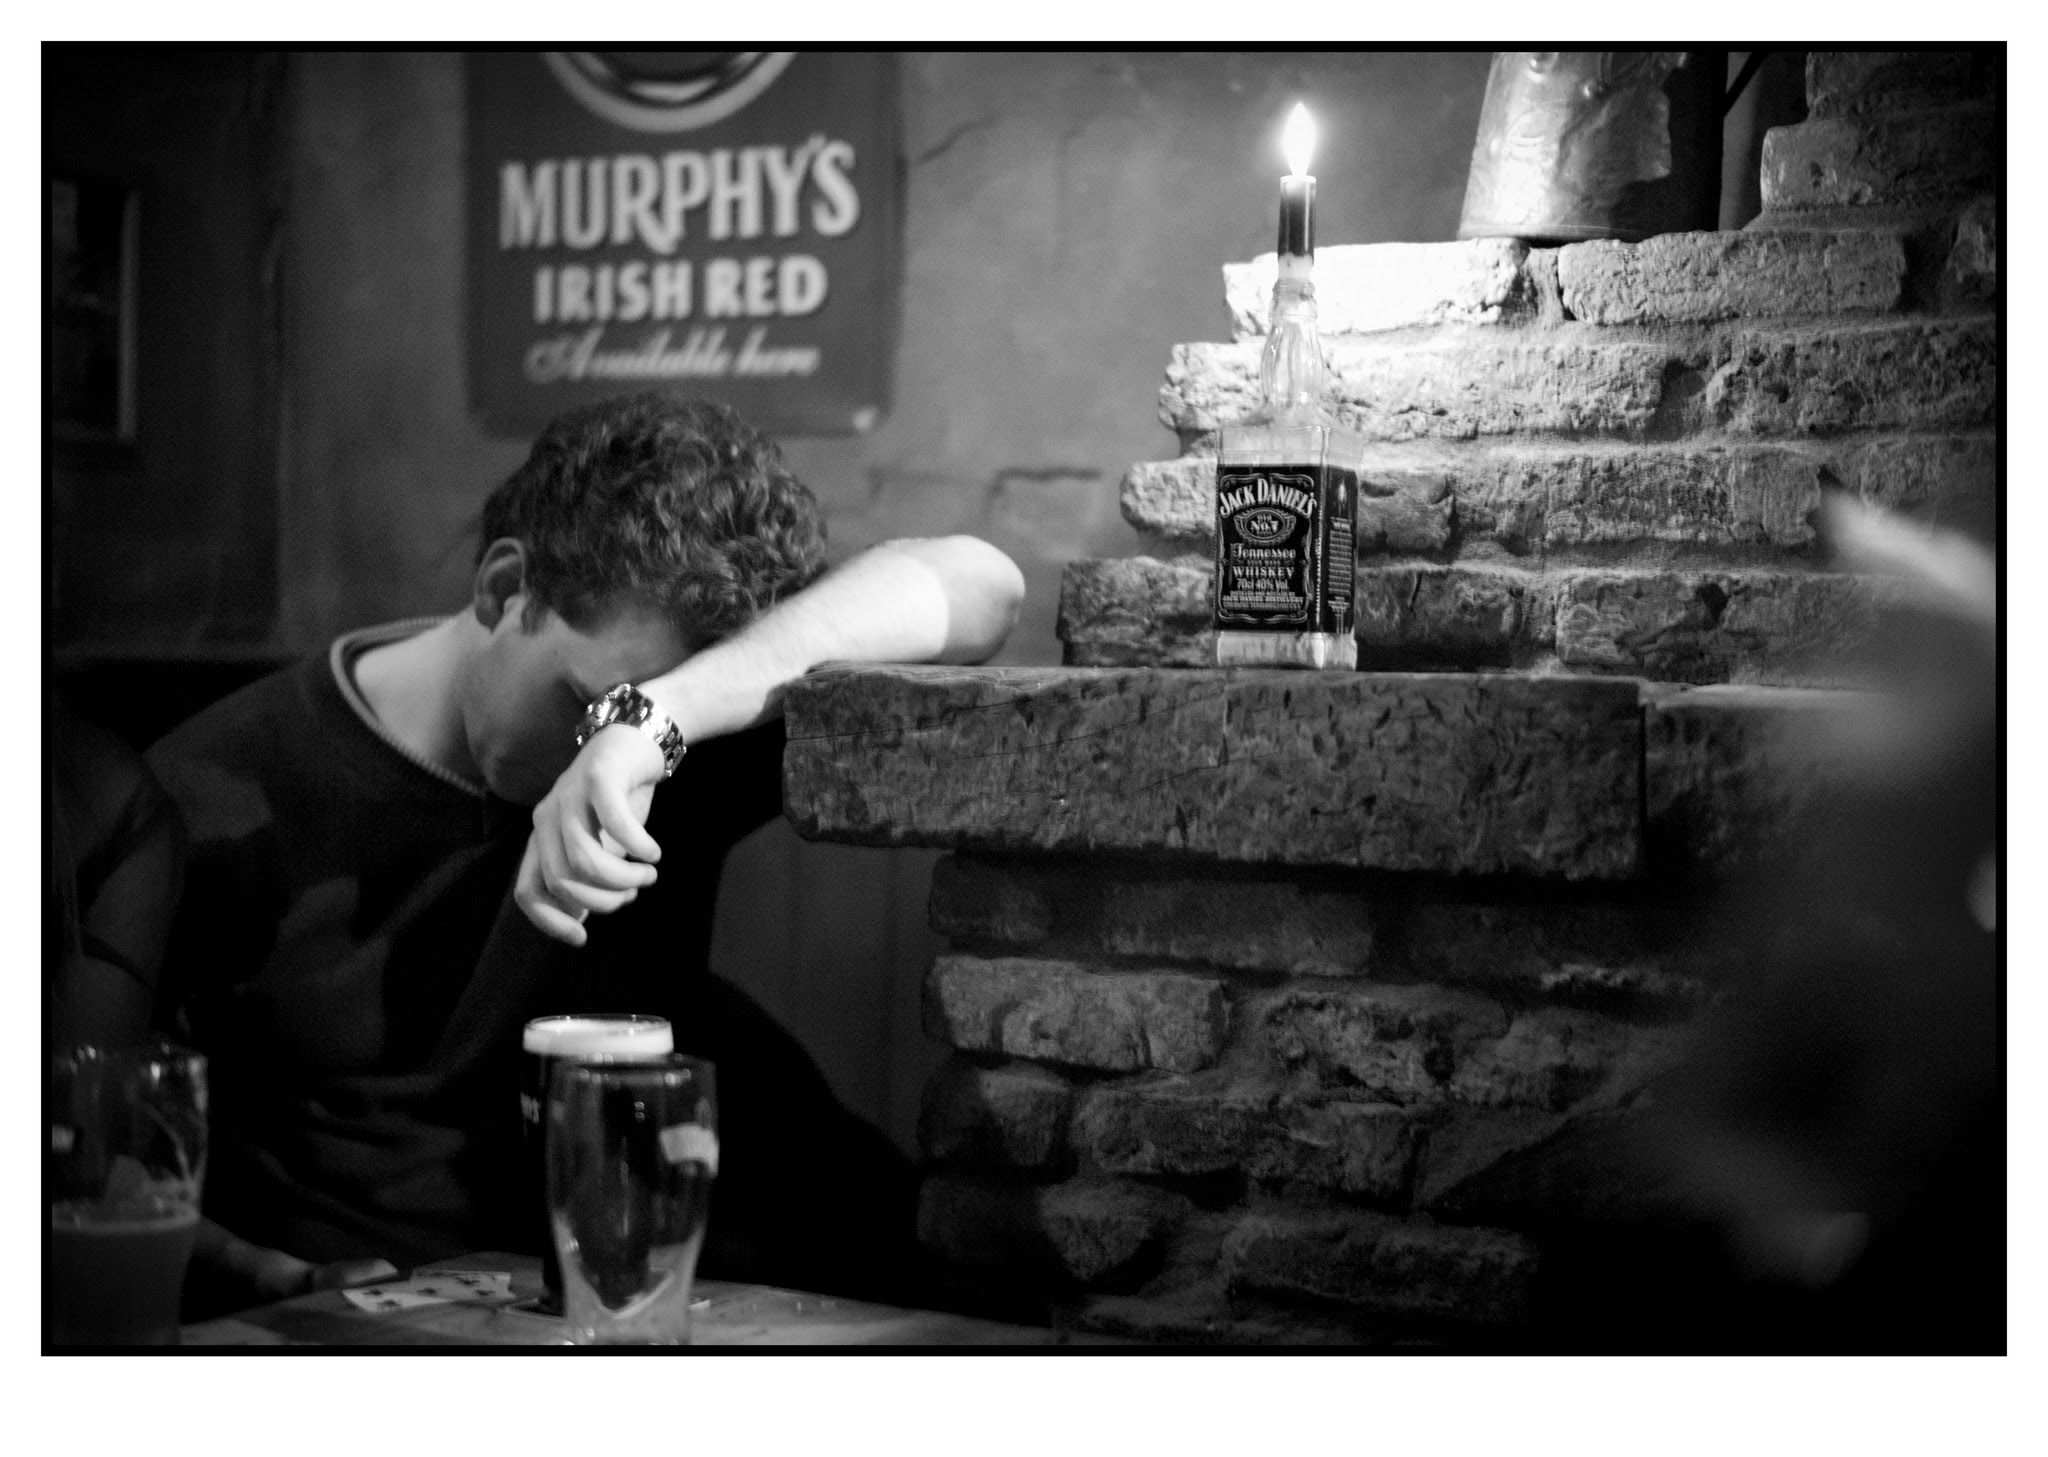 Photo: Murphy's Irish red. Paddy Murphy's, Rotterdam, 2012